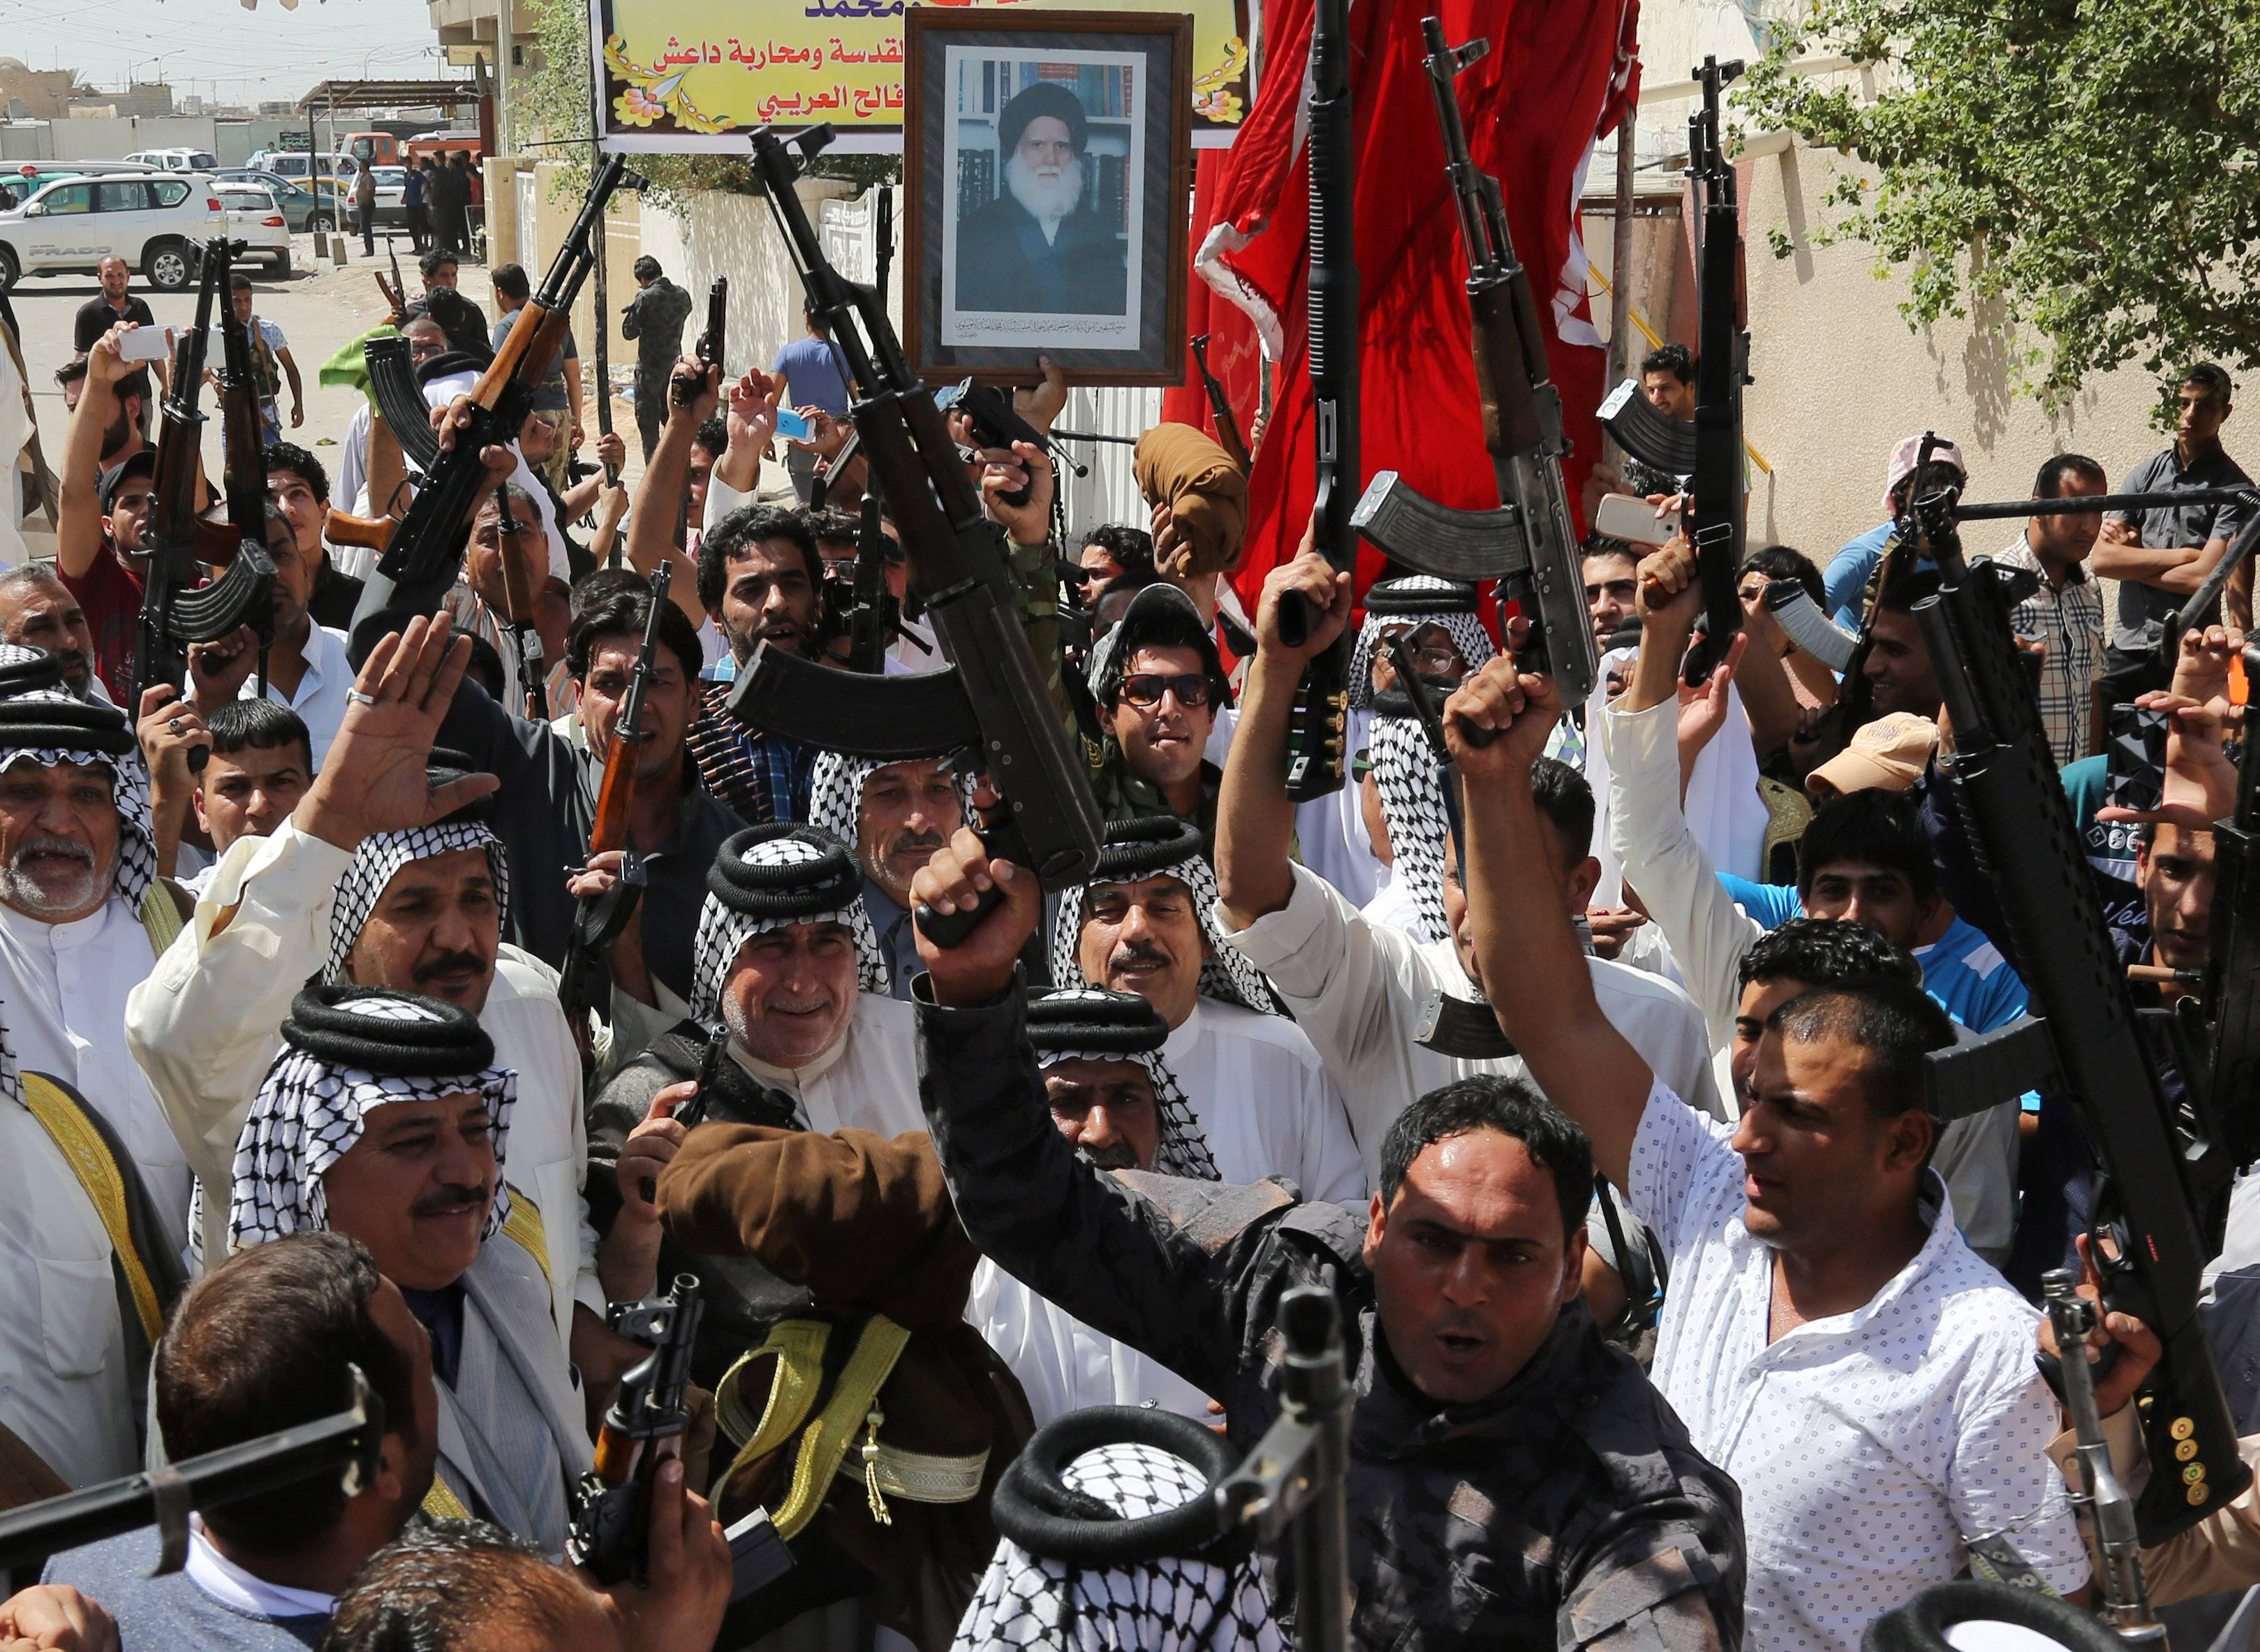 Iraqi Shiite tribal fighters raise their weapons and chant slogans against the al-Qaida-inspired Islamic State of Iraq and the Levant (ISIL) in Baghdad's Sadr city, Iraq. Emboldened by a call to arms by the top Shiite cleric, Iranian-backed militias have moved quickly to the center of Iraq's political landscape.